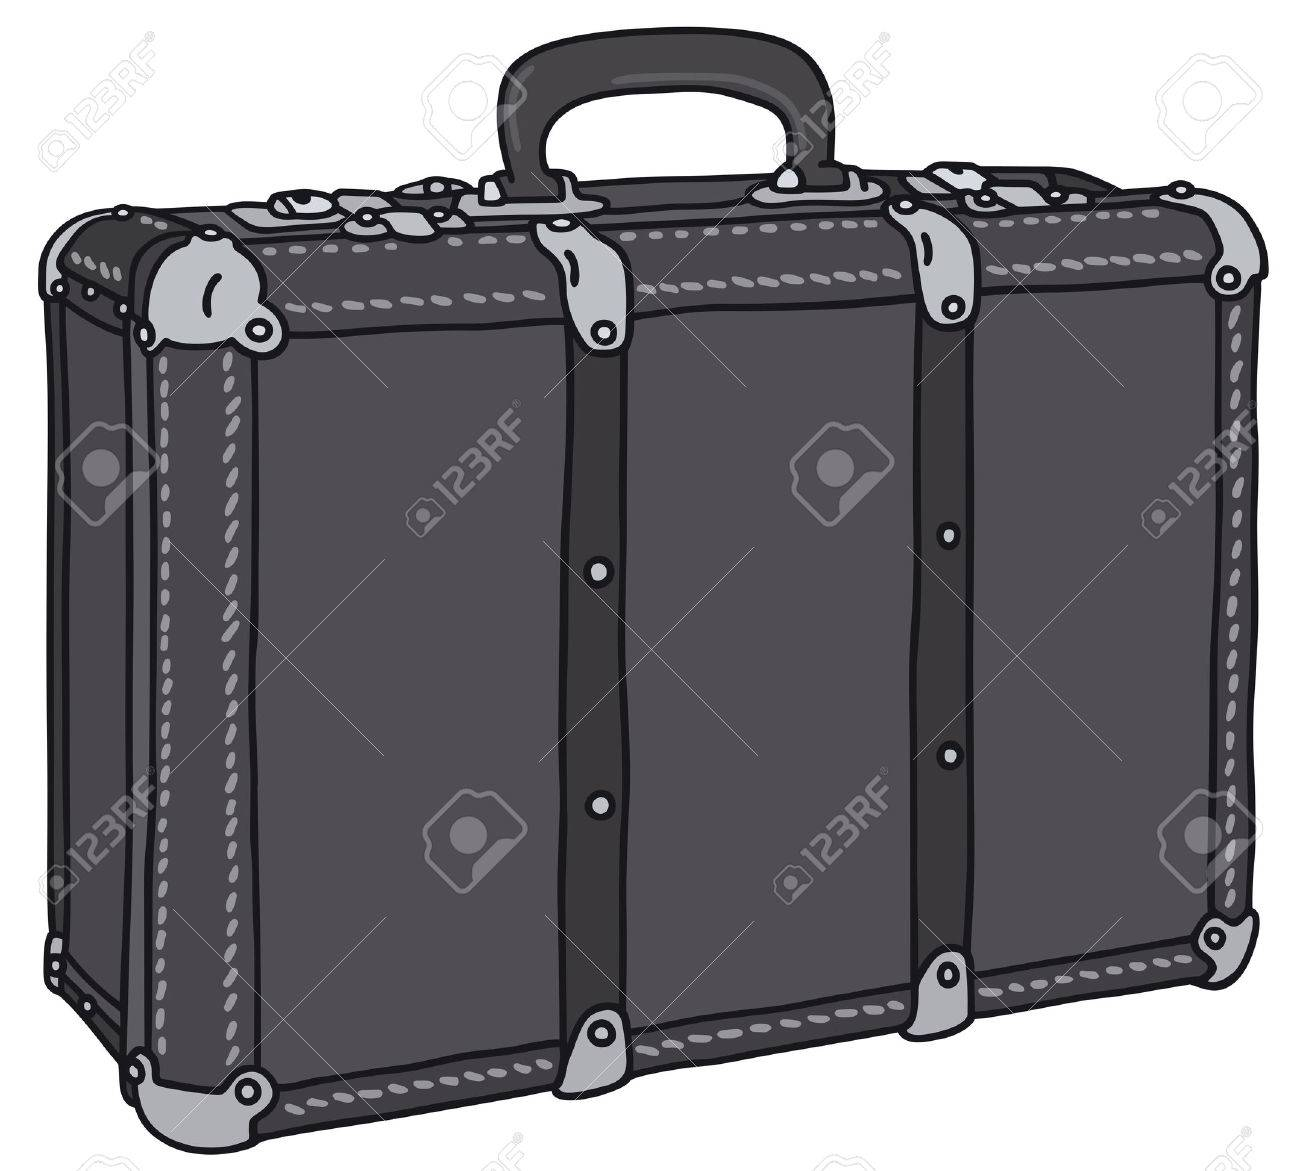 Hand Drawing Of An Old Leather Suitcase Royalty Free Cliparts ...